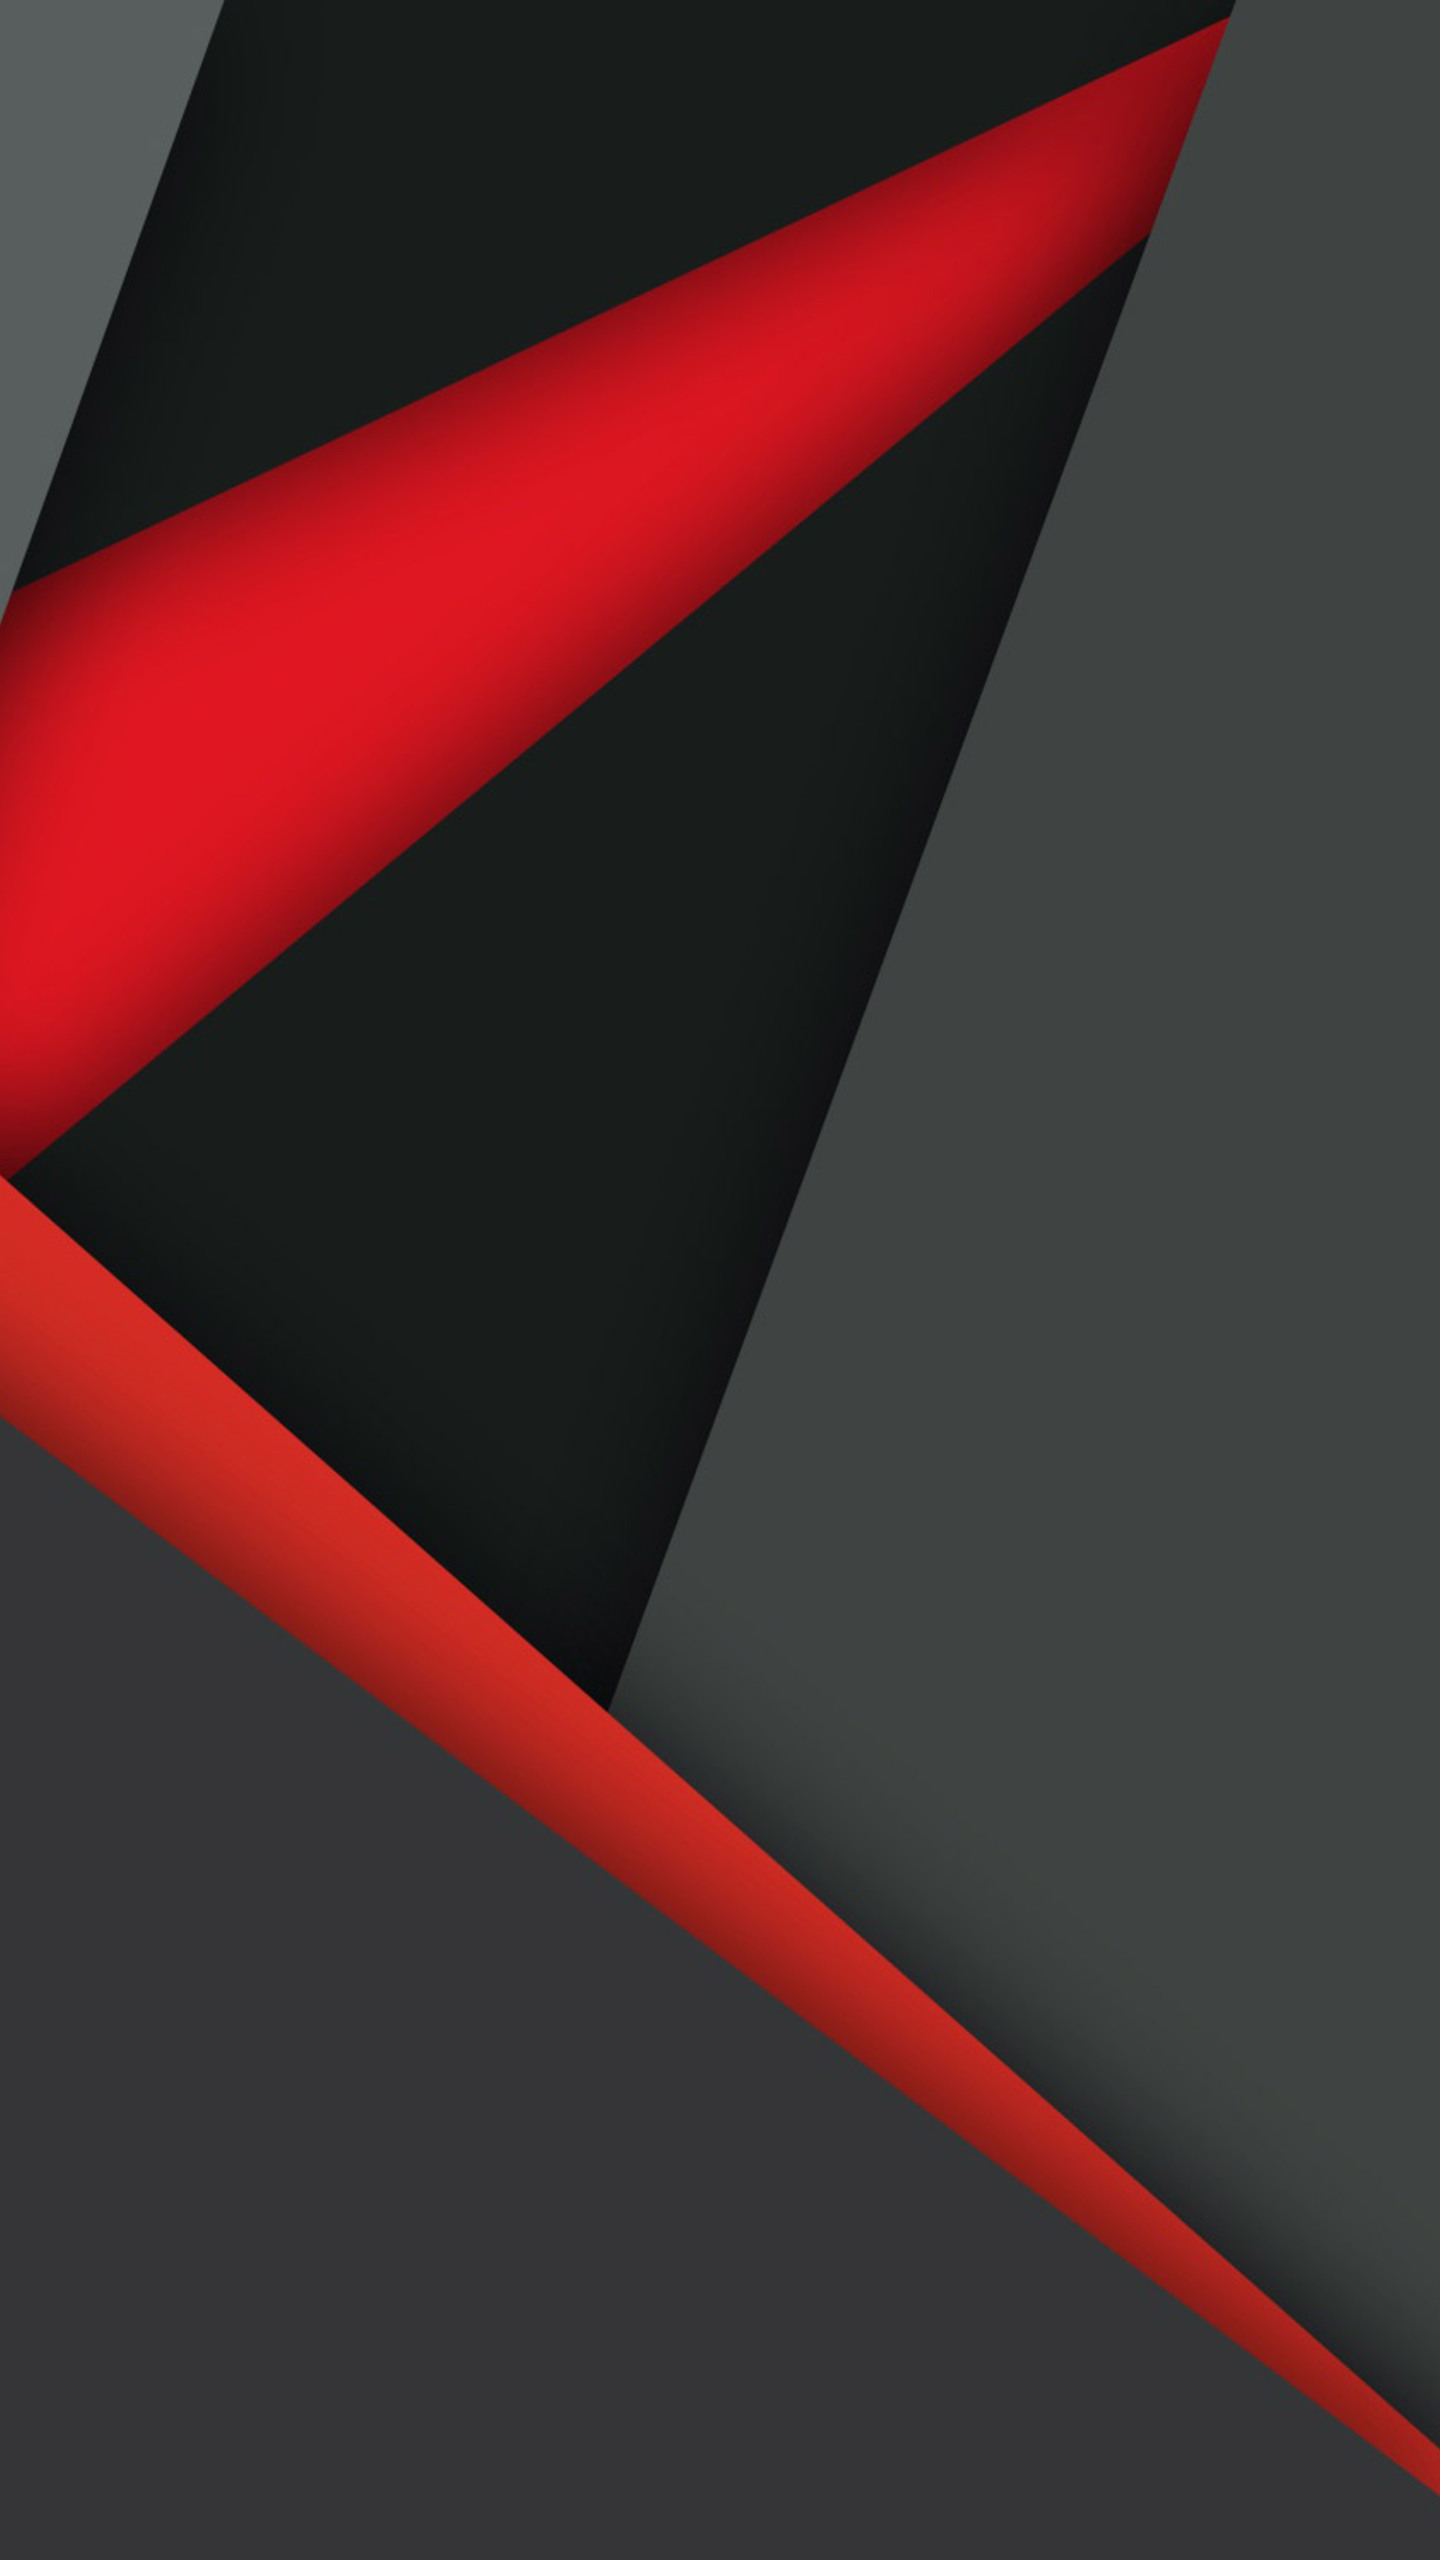 1440x2560 material design dark red black samsung galaxy s6 for Black and red wallpaper designs